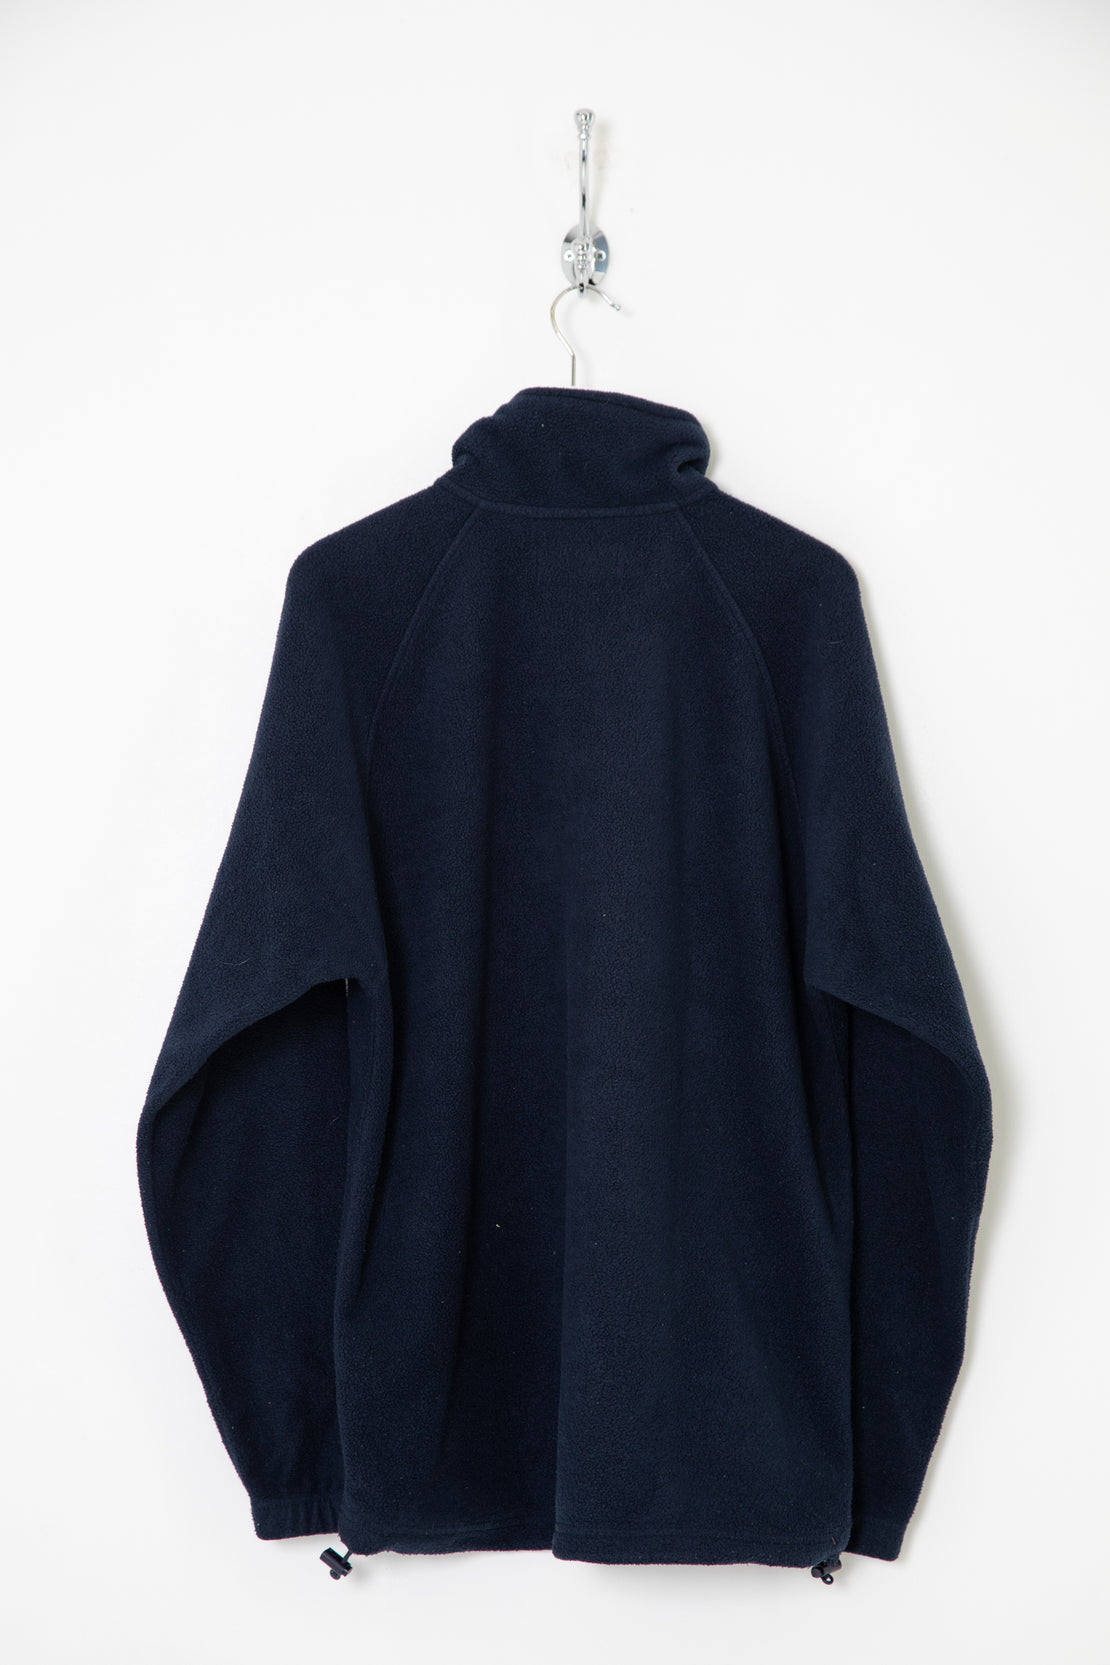 Kappa Fleece (M)